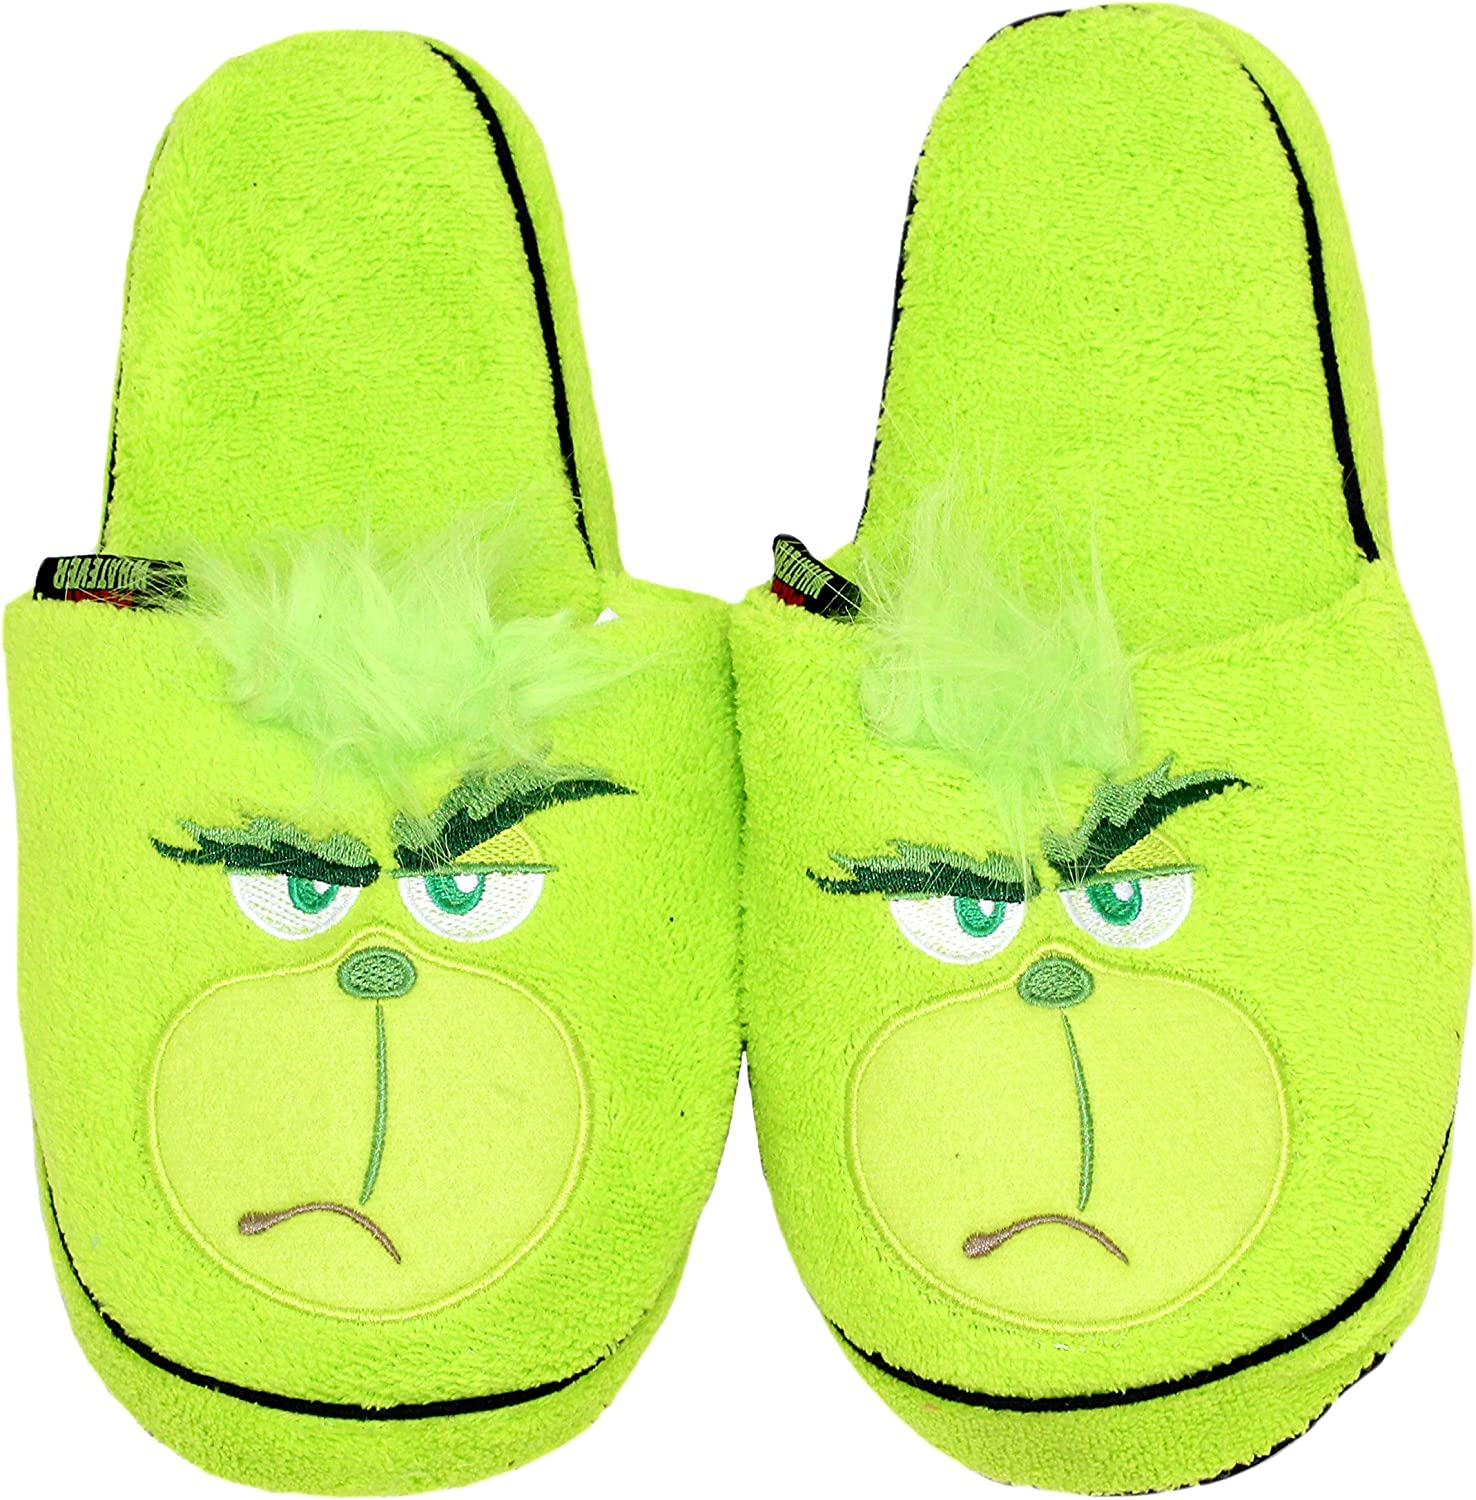 Grinch Adult Merry Whatever Adult Green Embroidered Plush Scuff Slipper